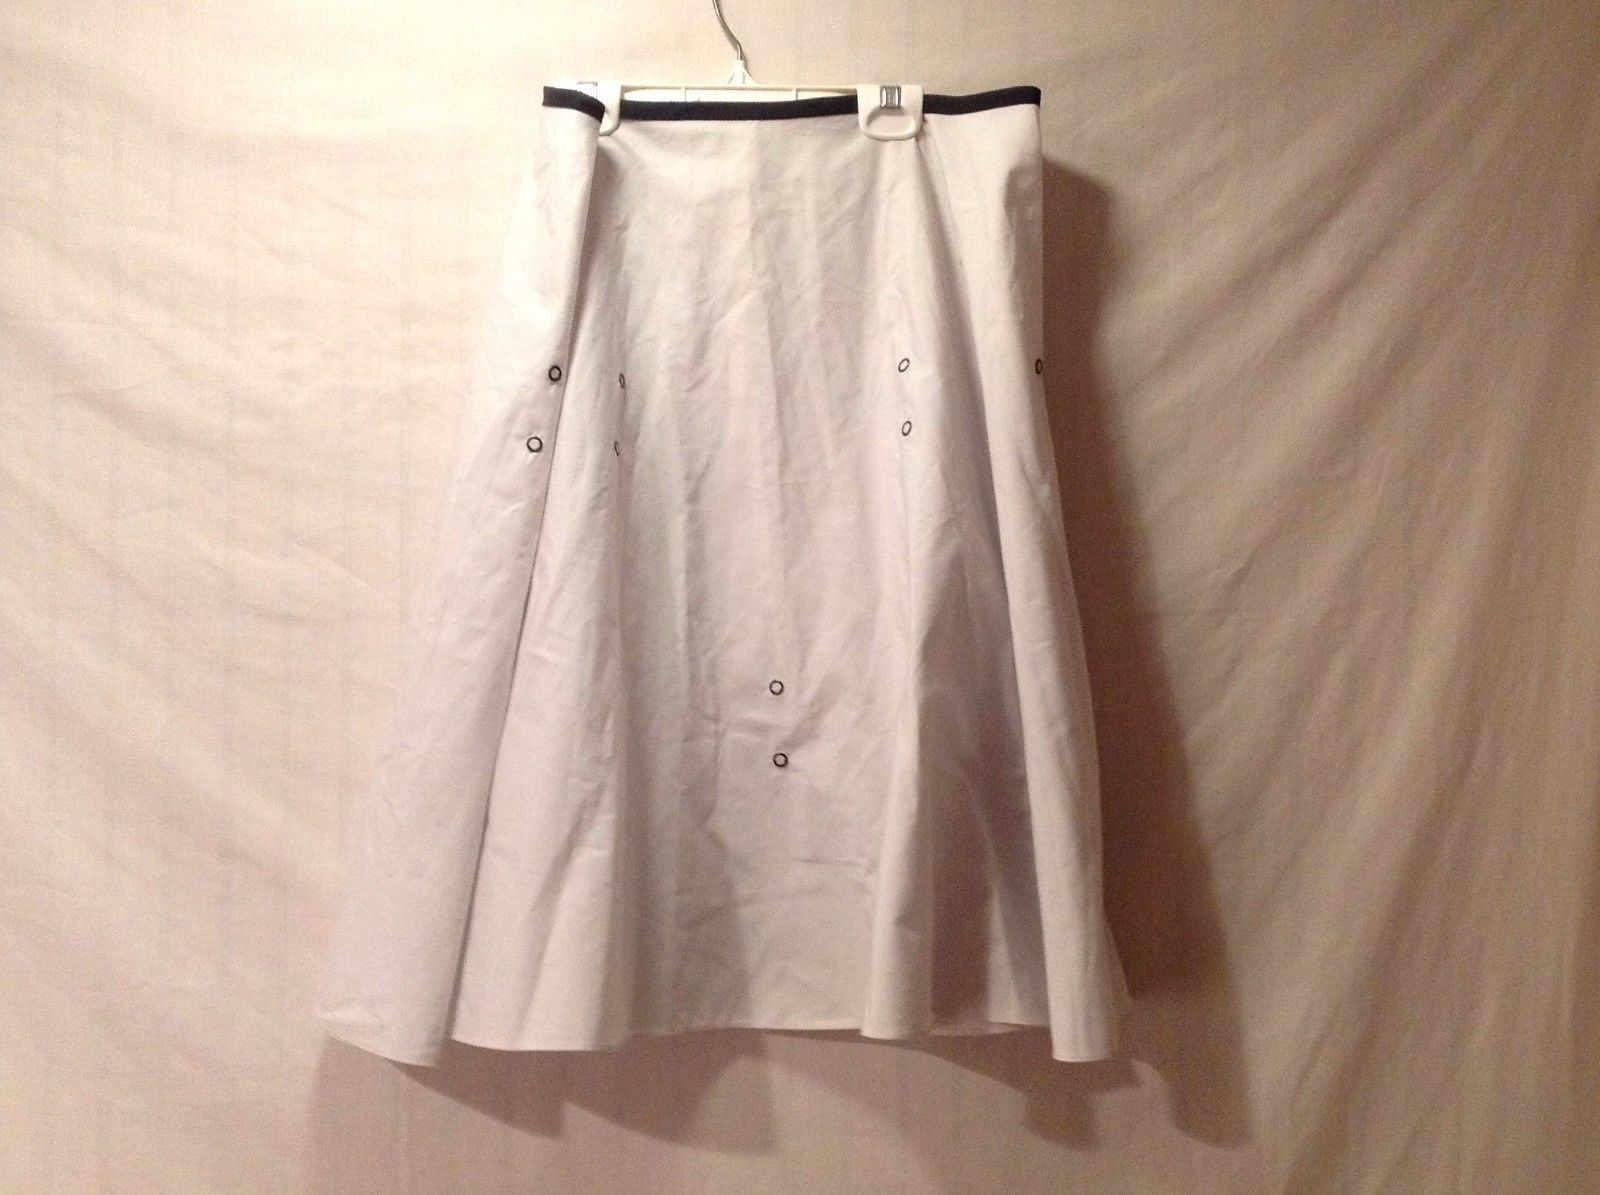 Preowned Good Condition Above Knee Skirt White Skirt Black Piping Size Large